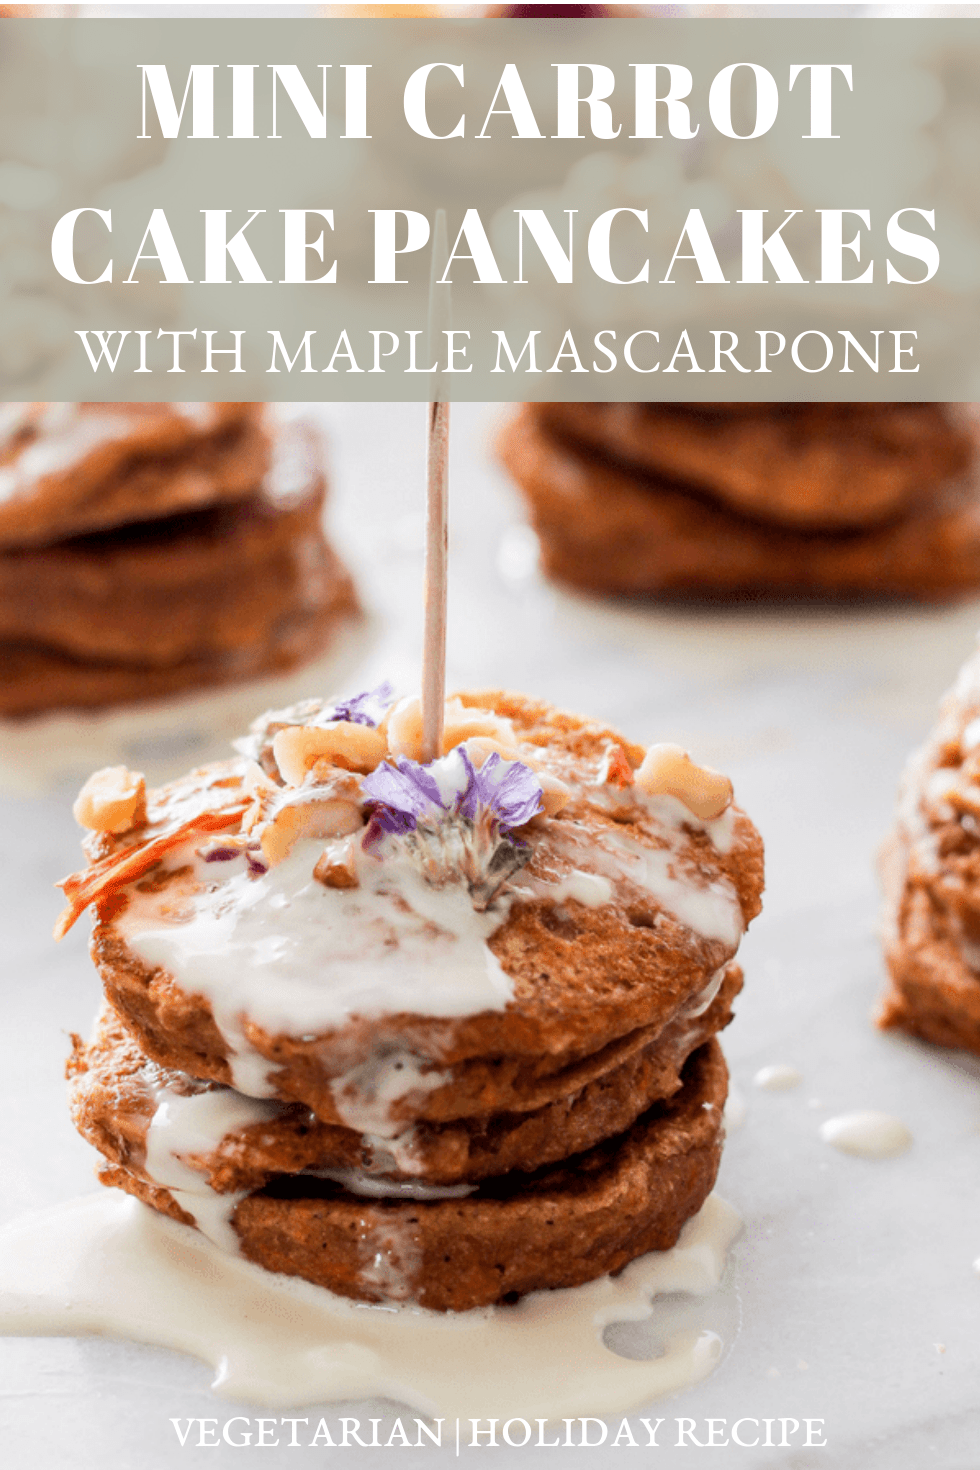 Mini Carrot Cake Pancakes with Maple Mascarpone, because celebrations are just better with these delectable, little stacks on the table. Dress them up with edible flowers for the perfect Easter (or anytime!) party treat. #gratefulgrazer #carrotcake #pancakes #brunchrecipe